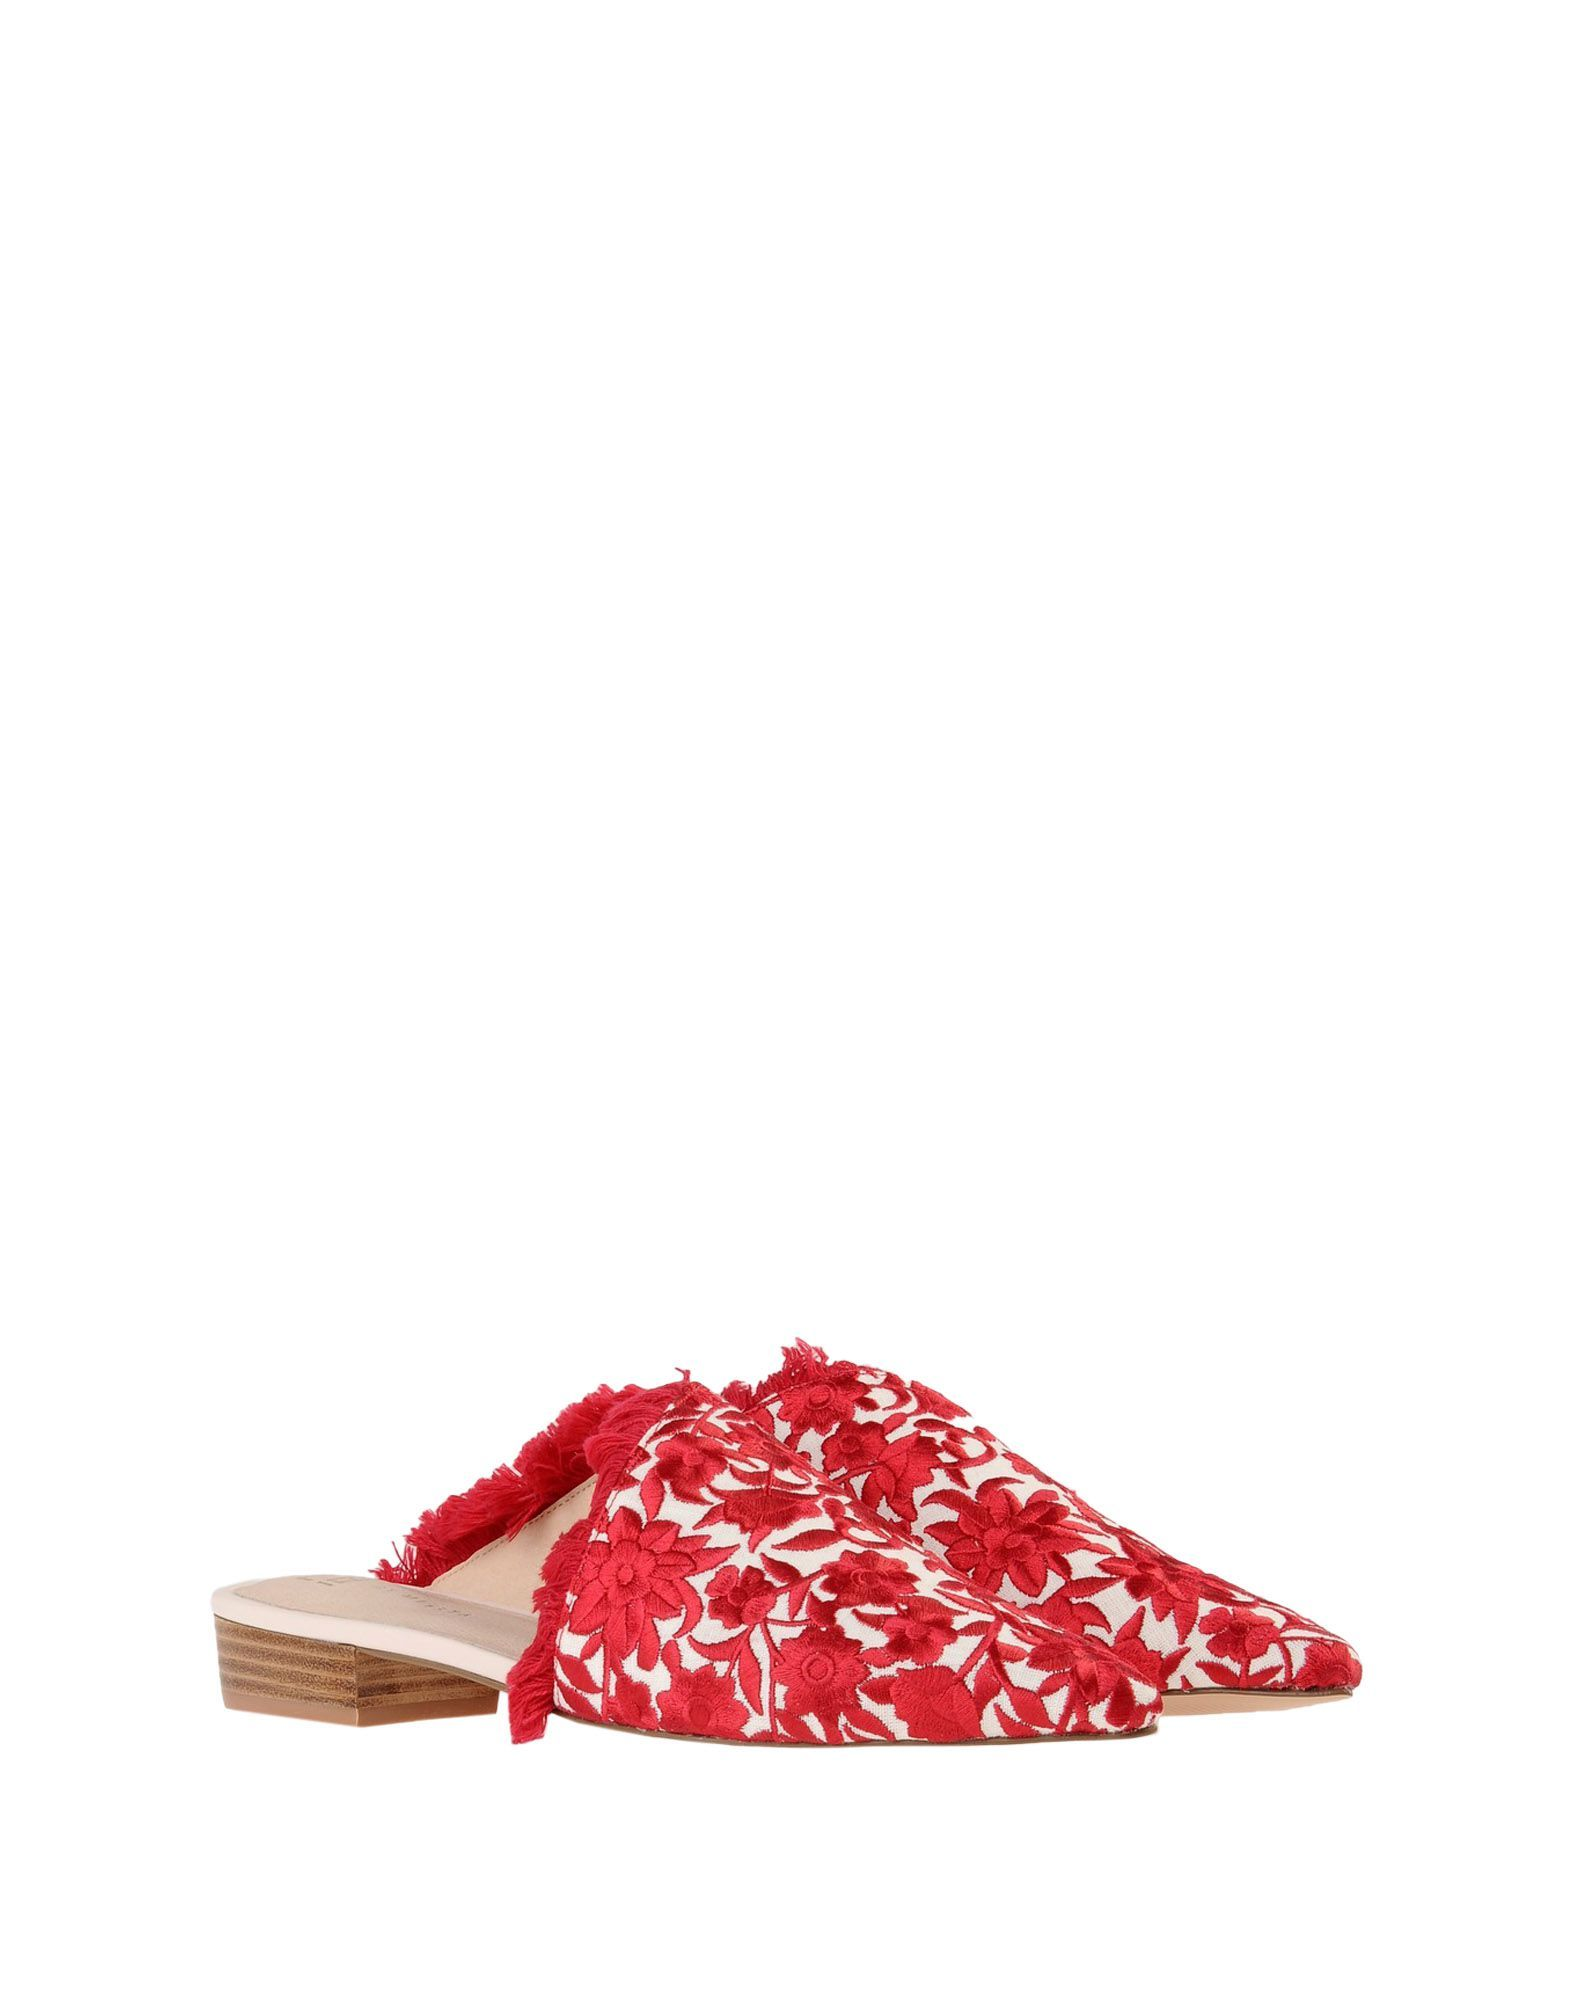 FOOTWEAR E8 By Miista Red Woman Textile fibres